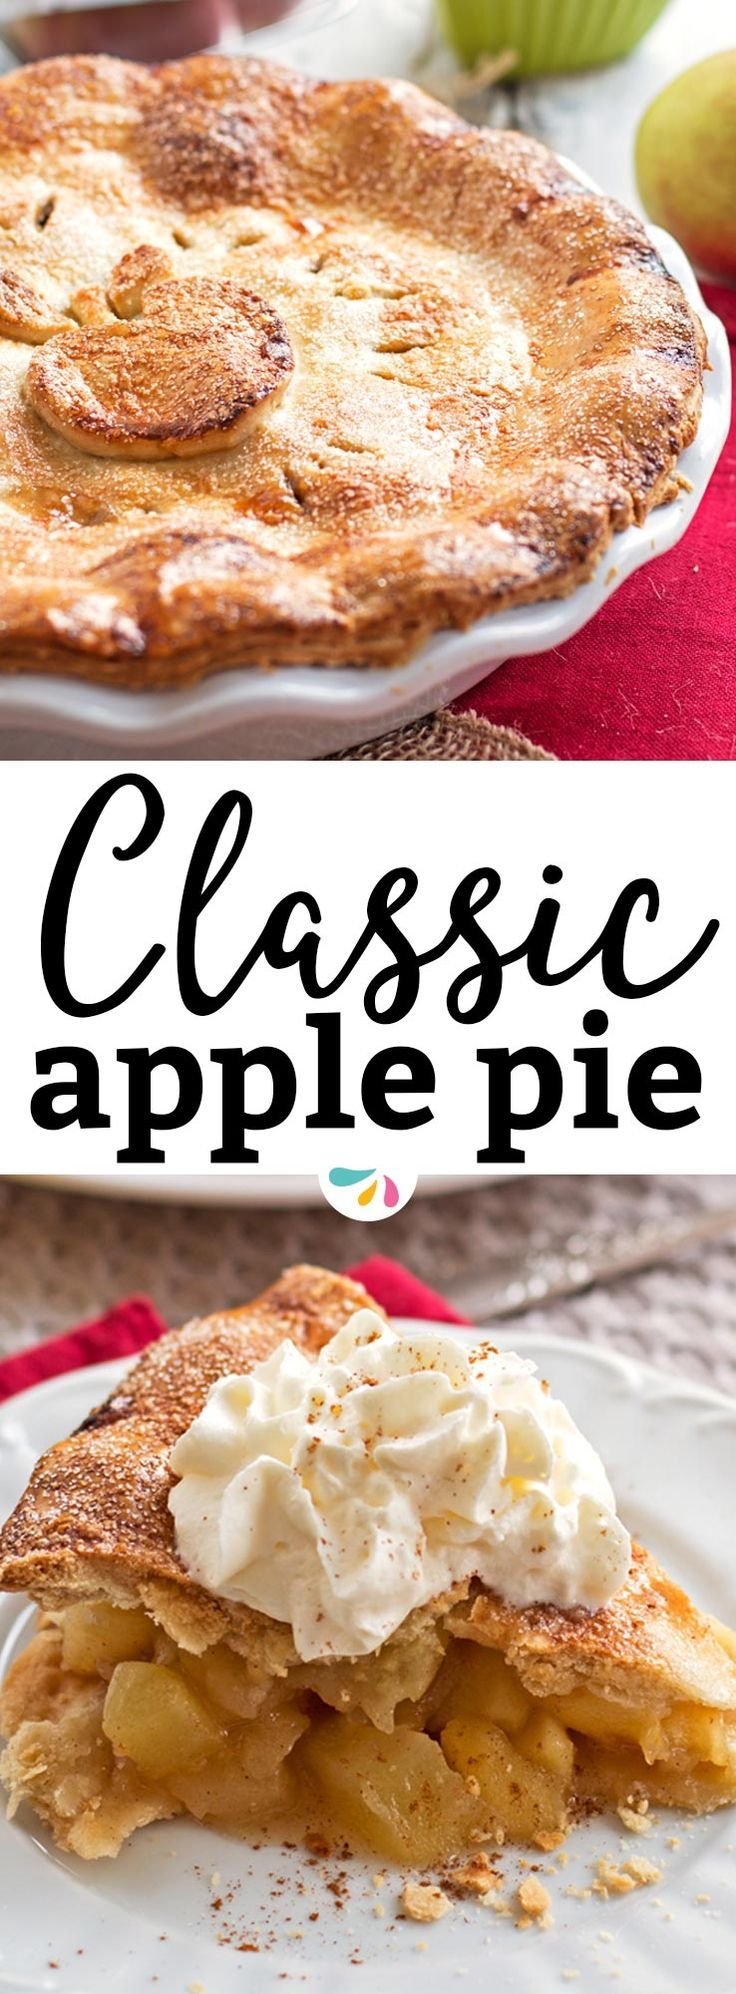 Have you ever made a classic apple pie for Thanksgiving before? This recipe for homemade apple pie is the absolutely best! An easy homemade cooked filling is baked in a from scratch crumbly crust for the ultimate Pioneer Woman holiday experience. This is the dessert everybody will be raving about after your next family party this fall - sometimes the most simple evergreens are the ones everybody loves most. | #thanksgiving #holidays #applepie #baking #fall #dessert #apples #recipe #pie